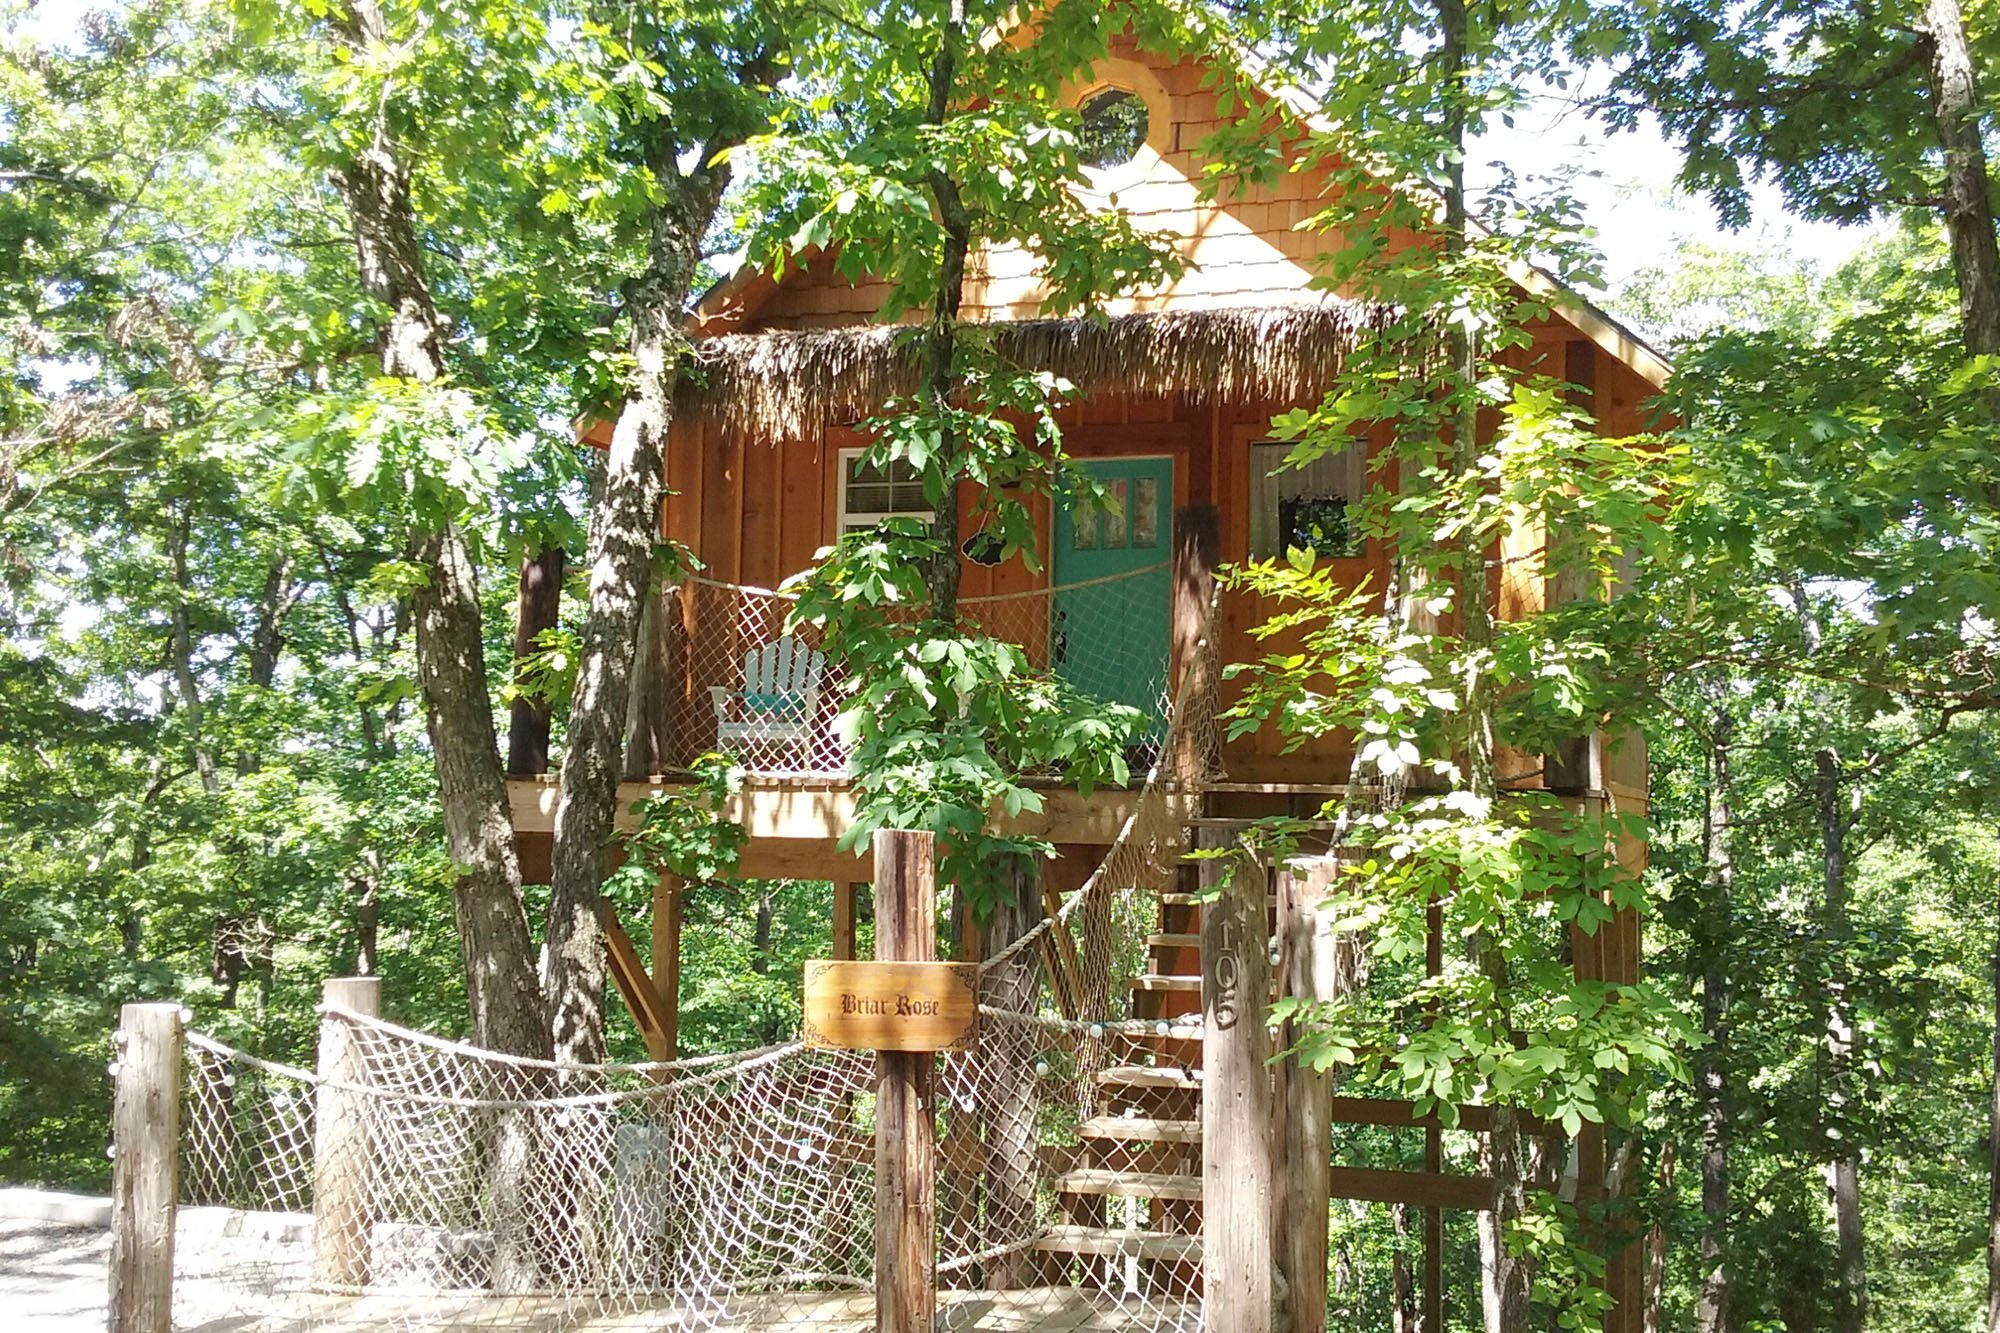 treehouse with netting and green door